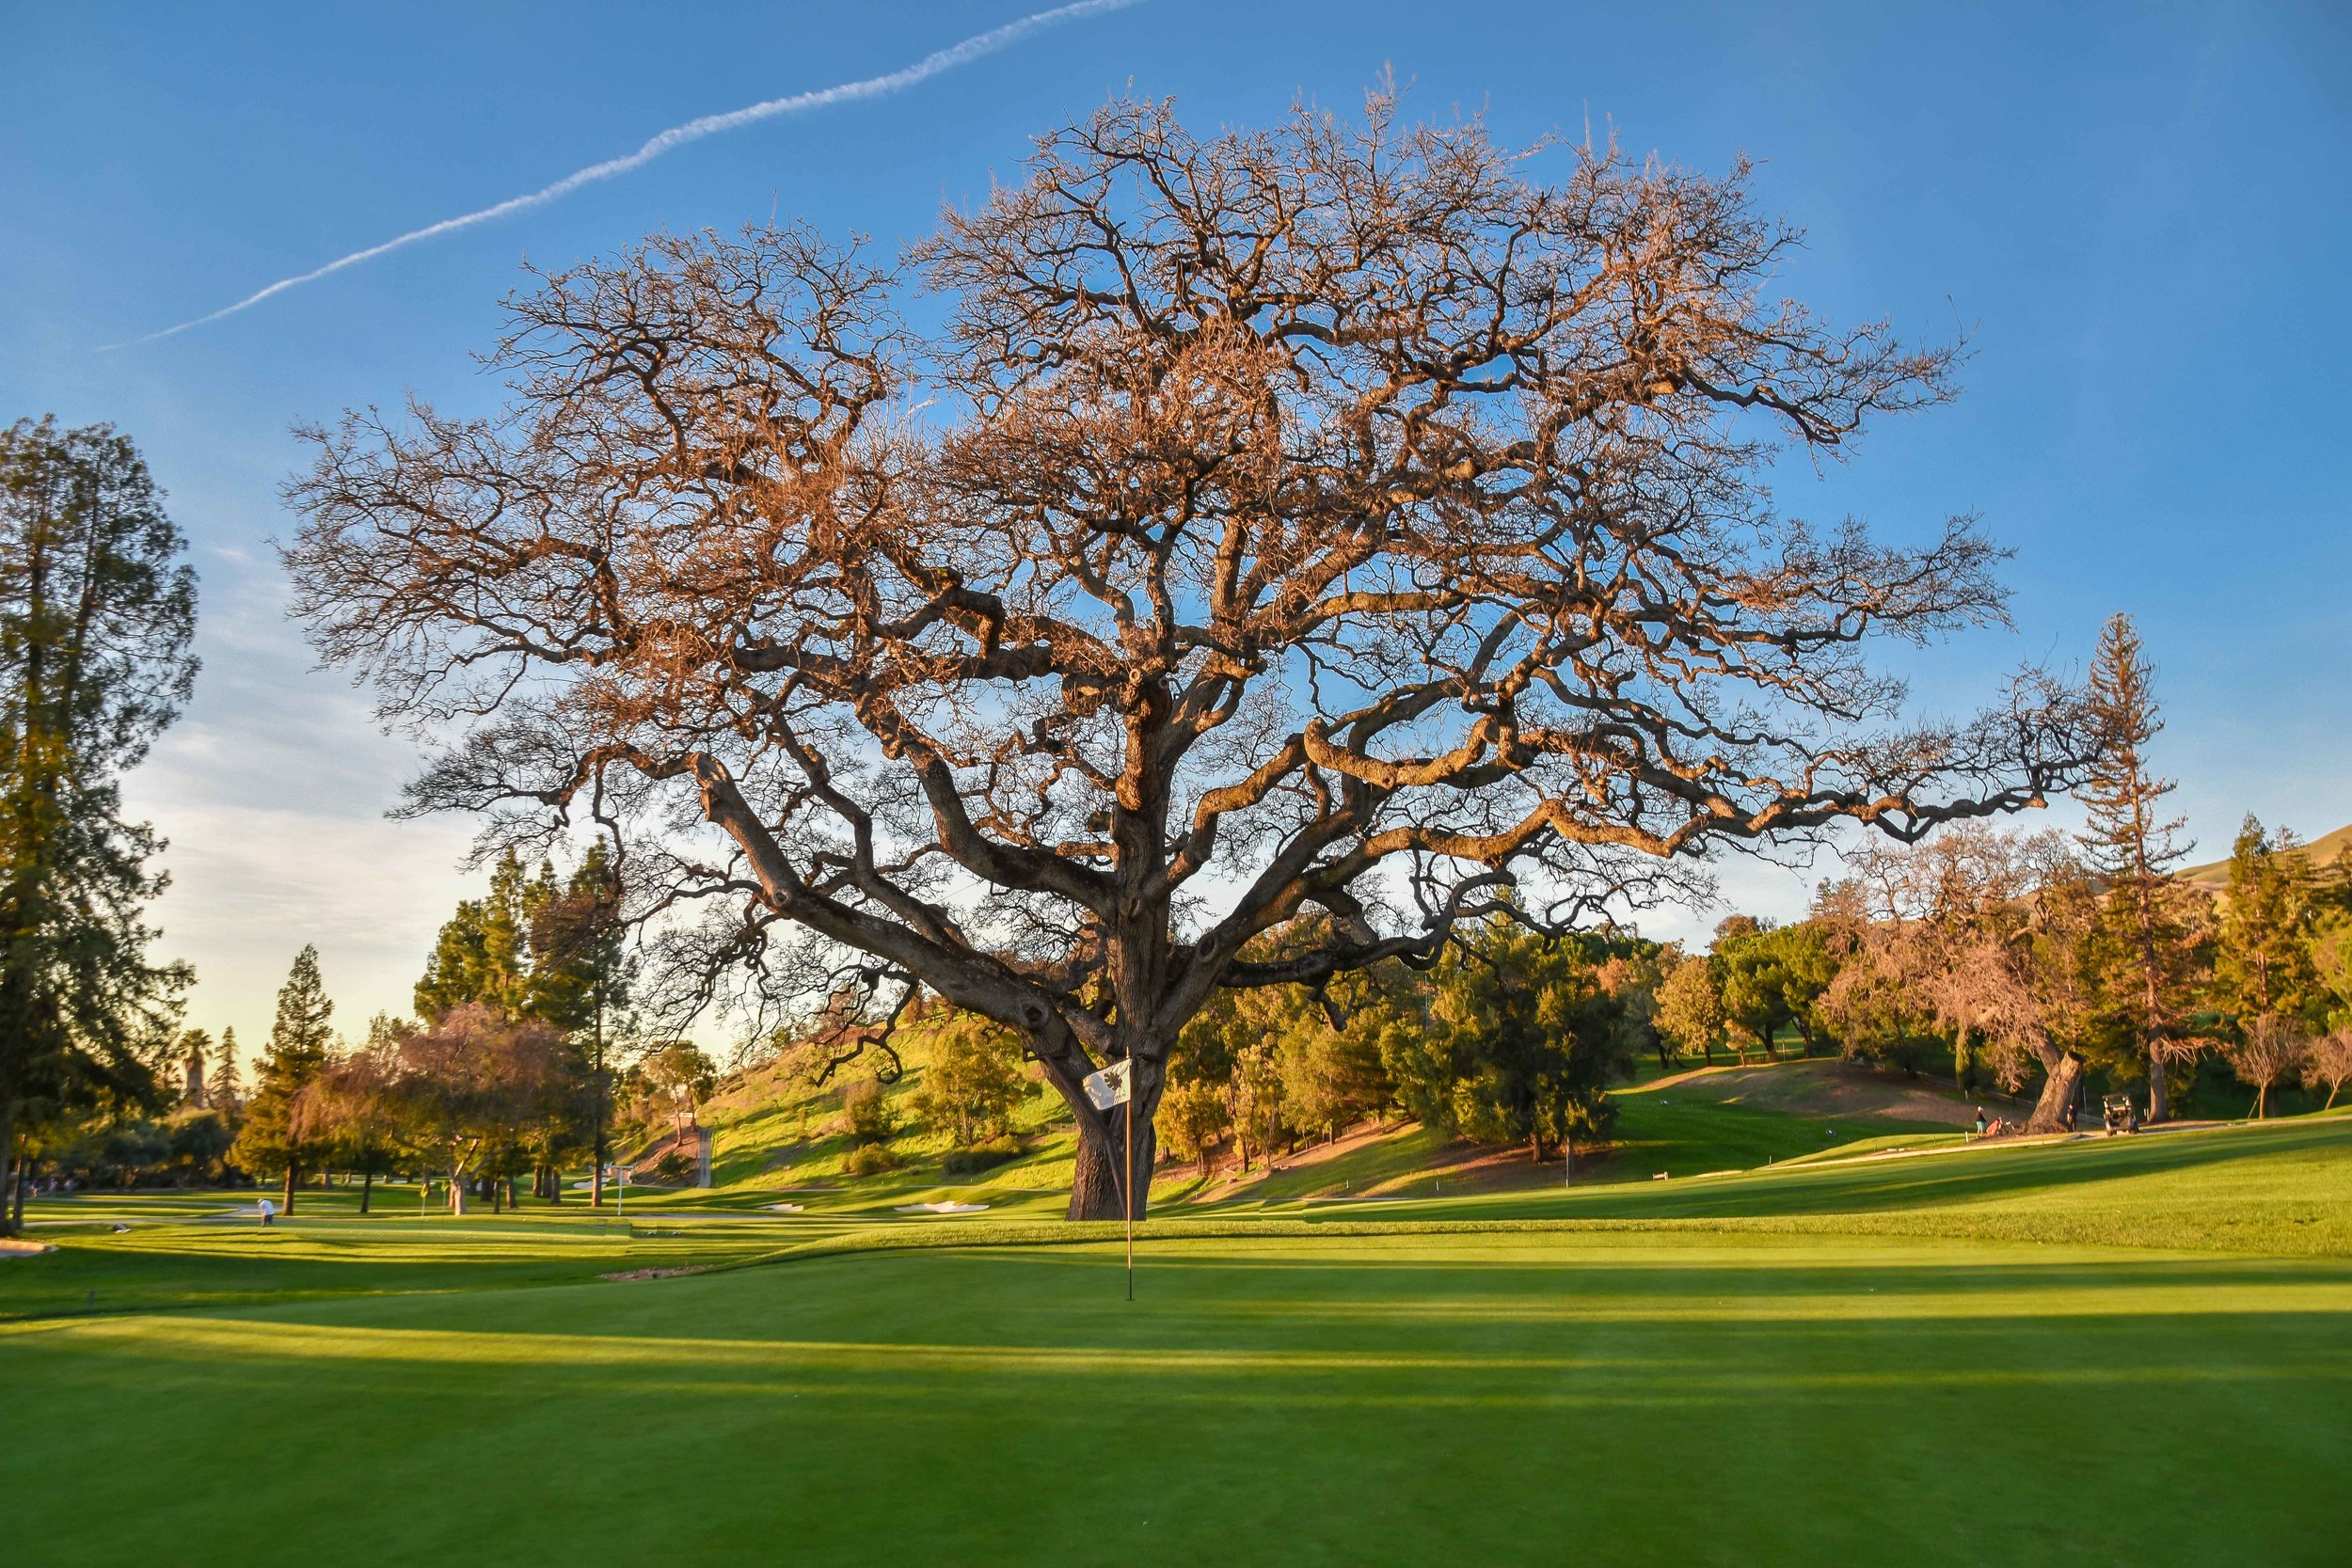 The 18th green at San Jose Country Club boasts one of the top 5 RGV Tour trees.